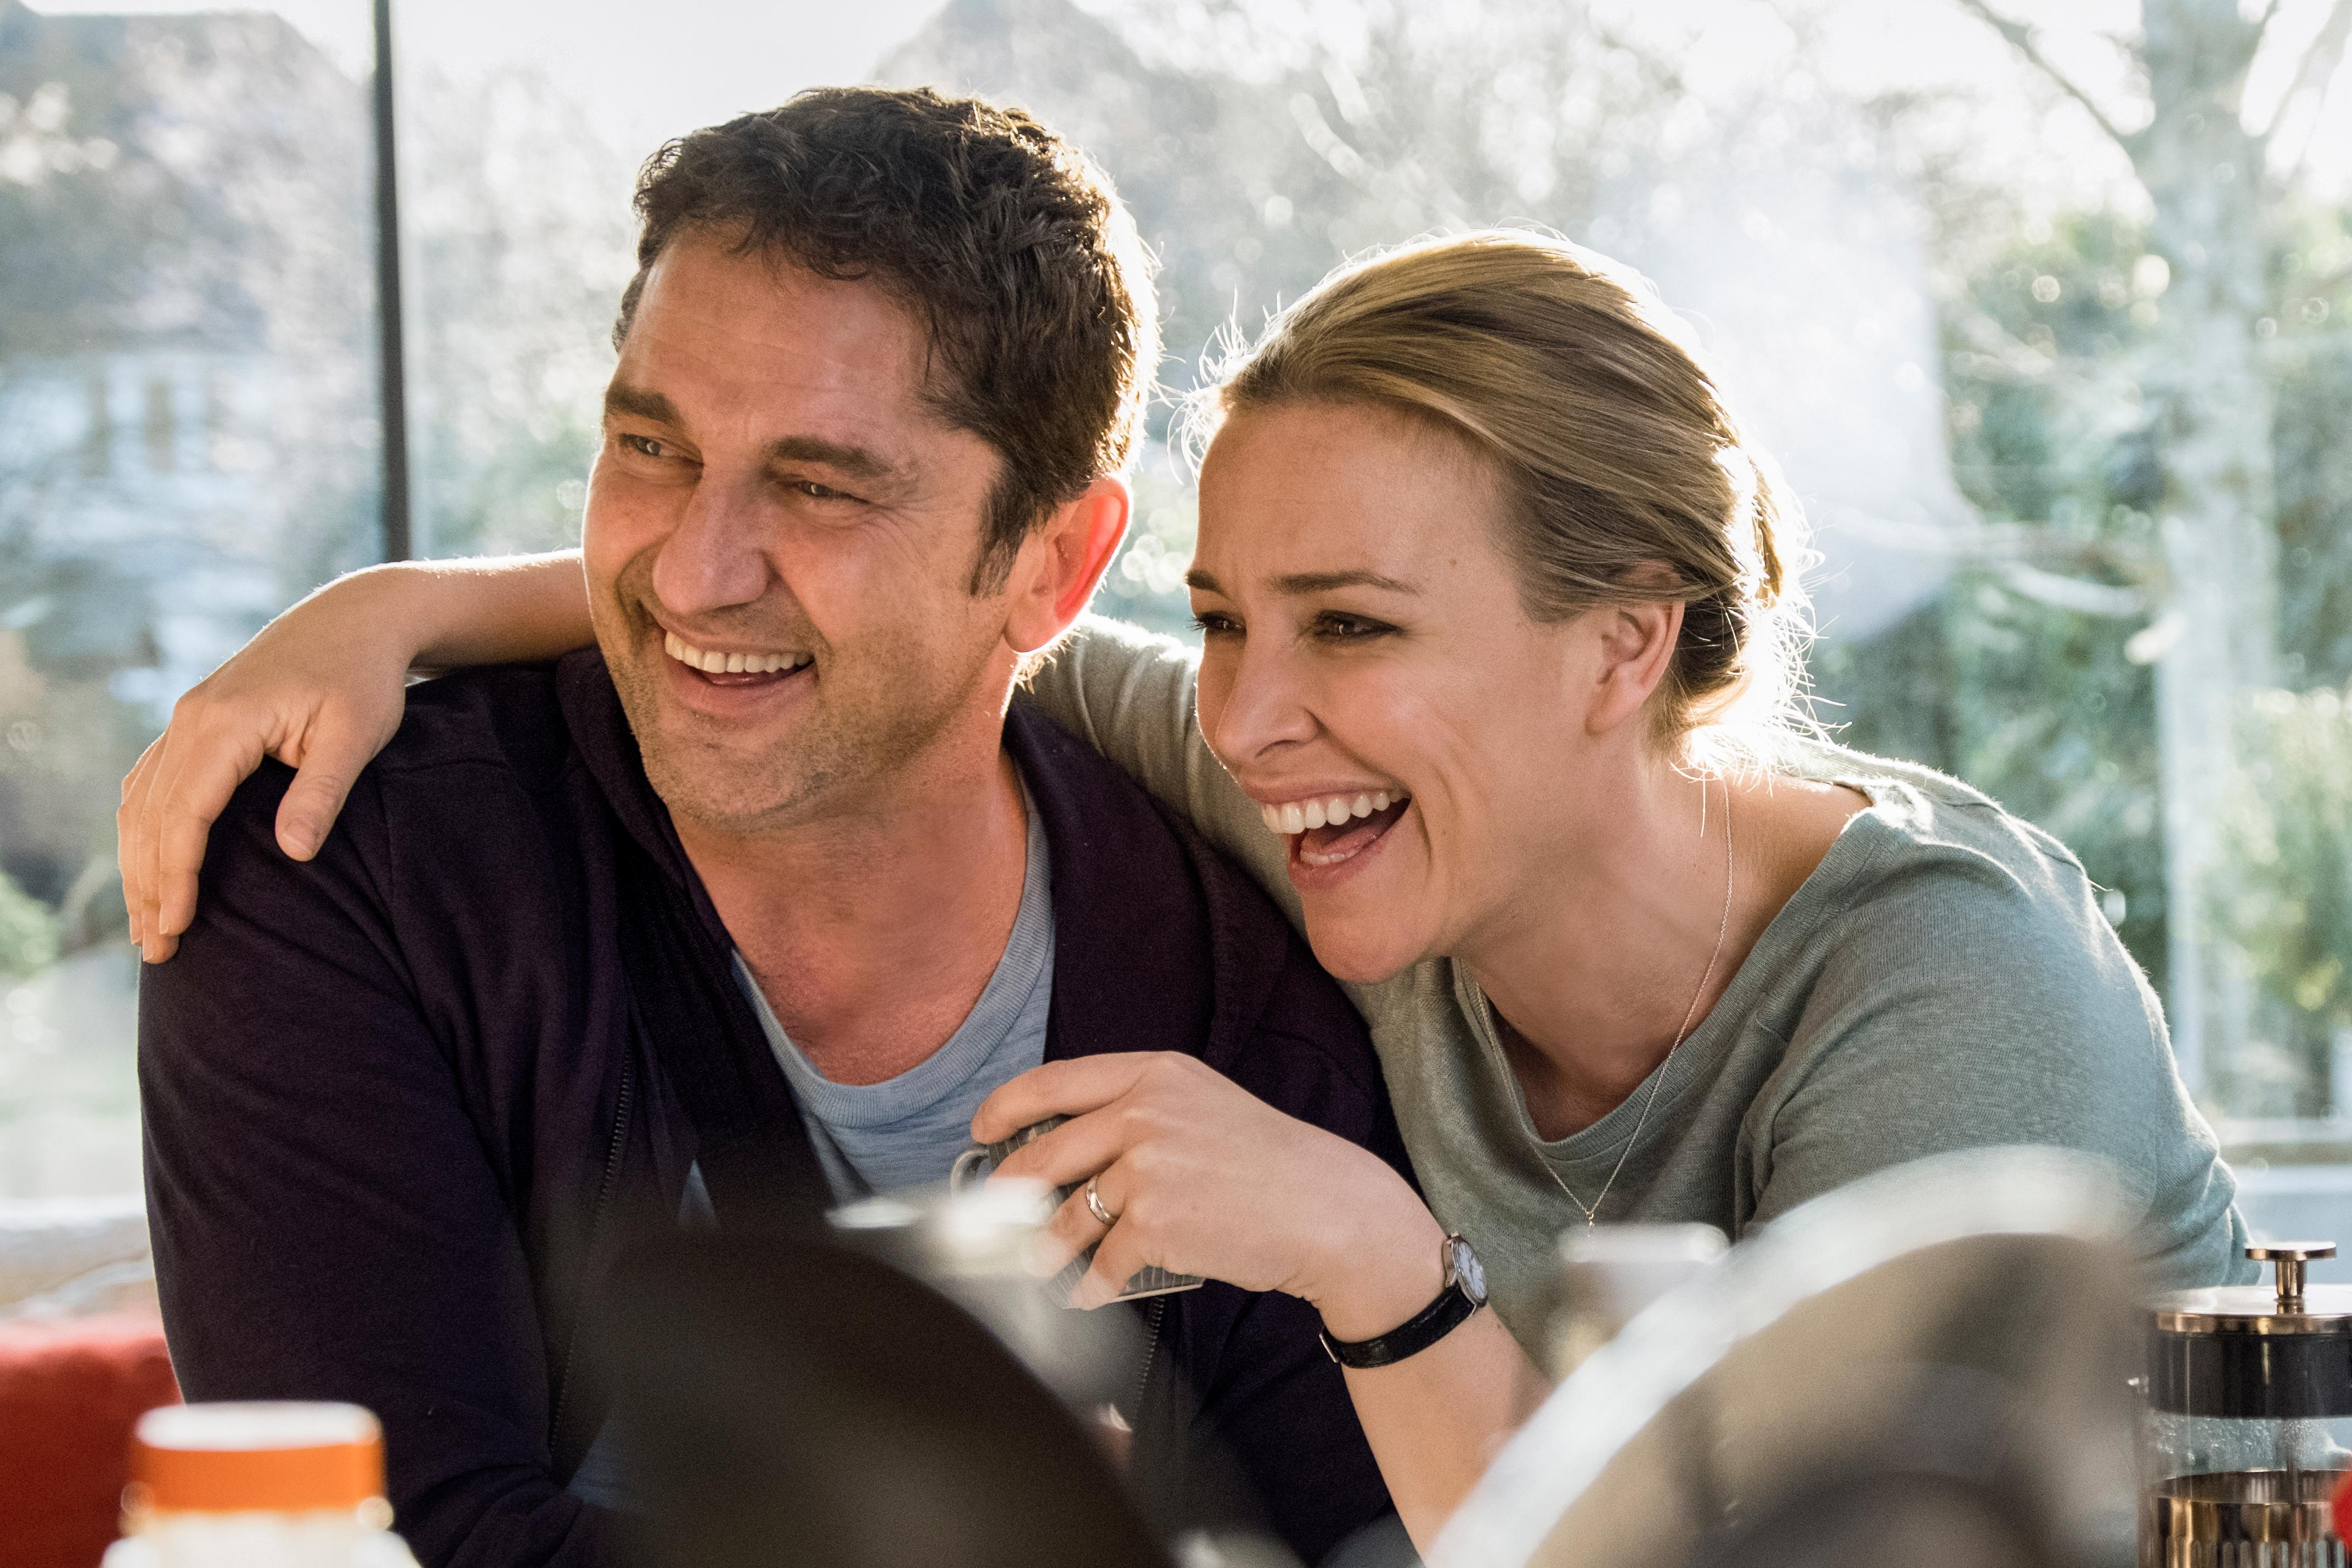 Gerard Butler 'Mike Banning' and Piper Parabo as 'Leah Banning' in ANGEL HAS FALLEN.{ }(Image: Lionsgate)